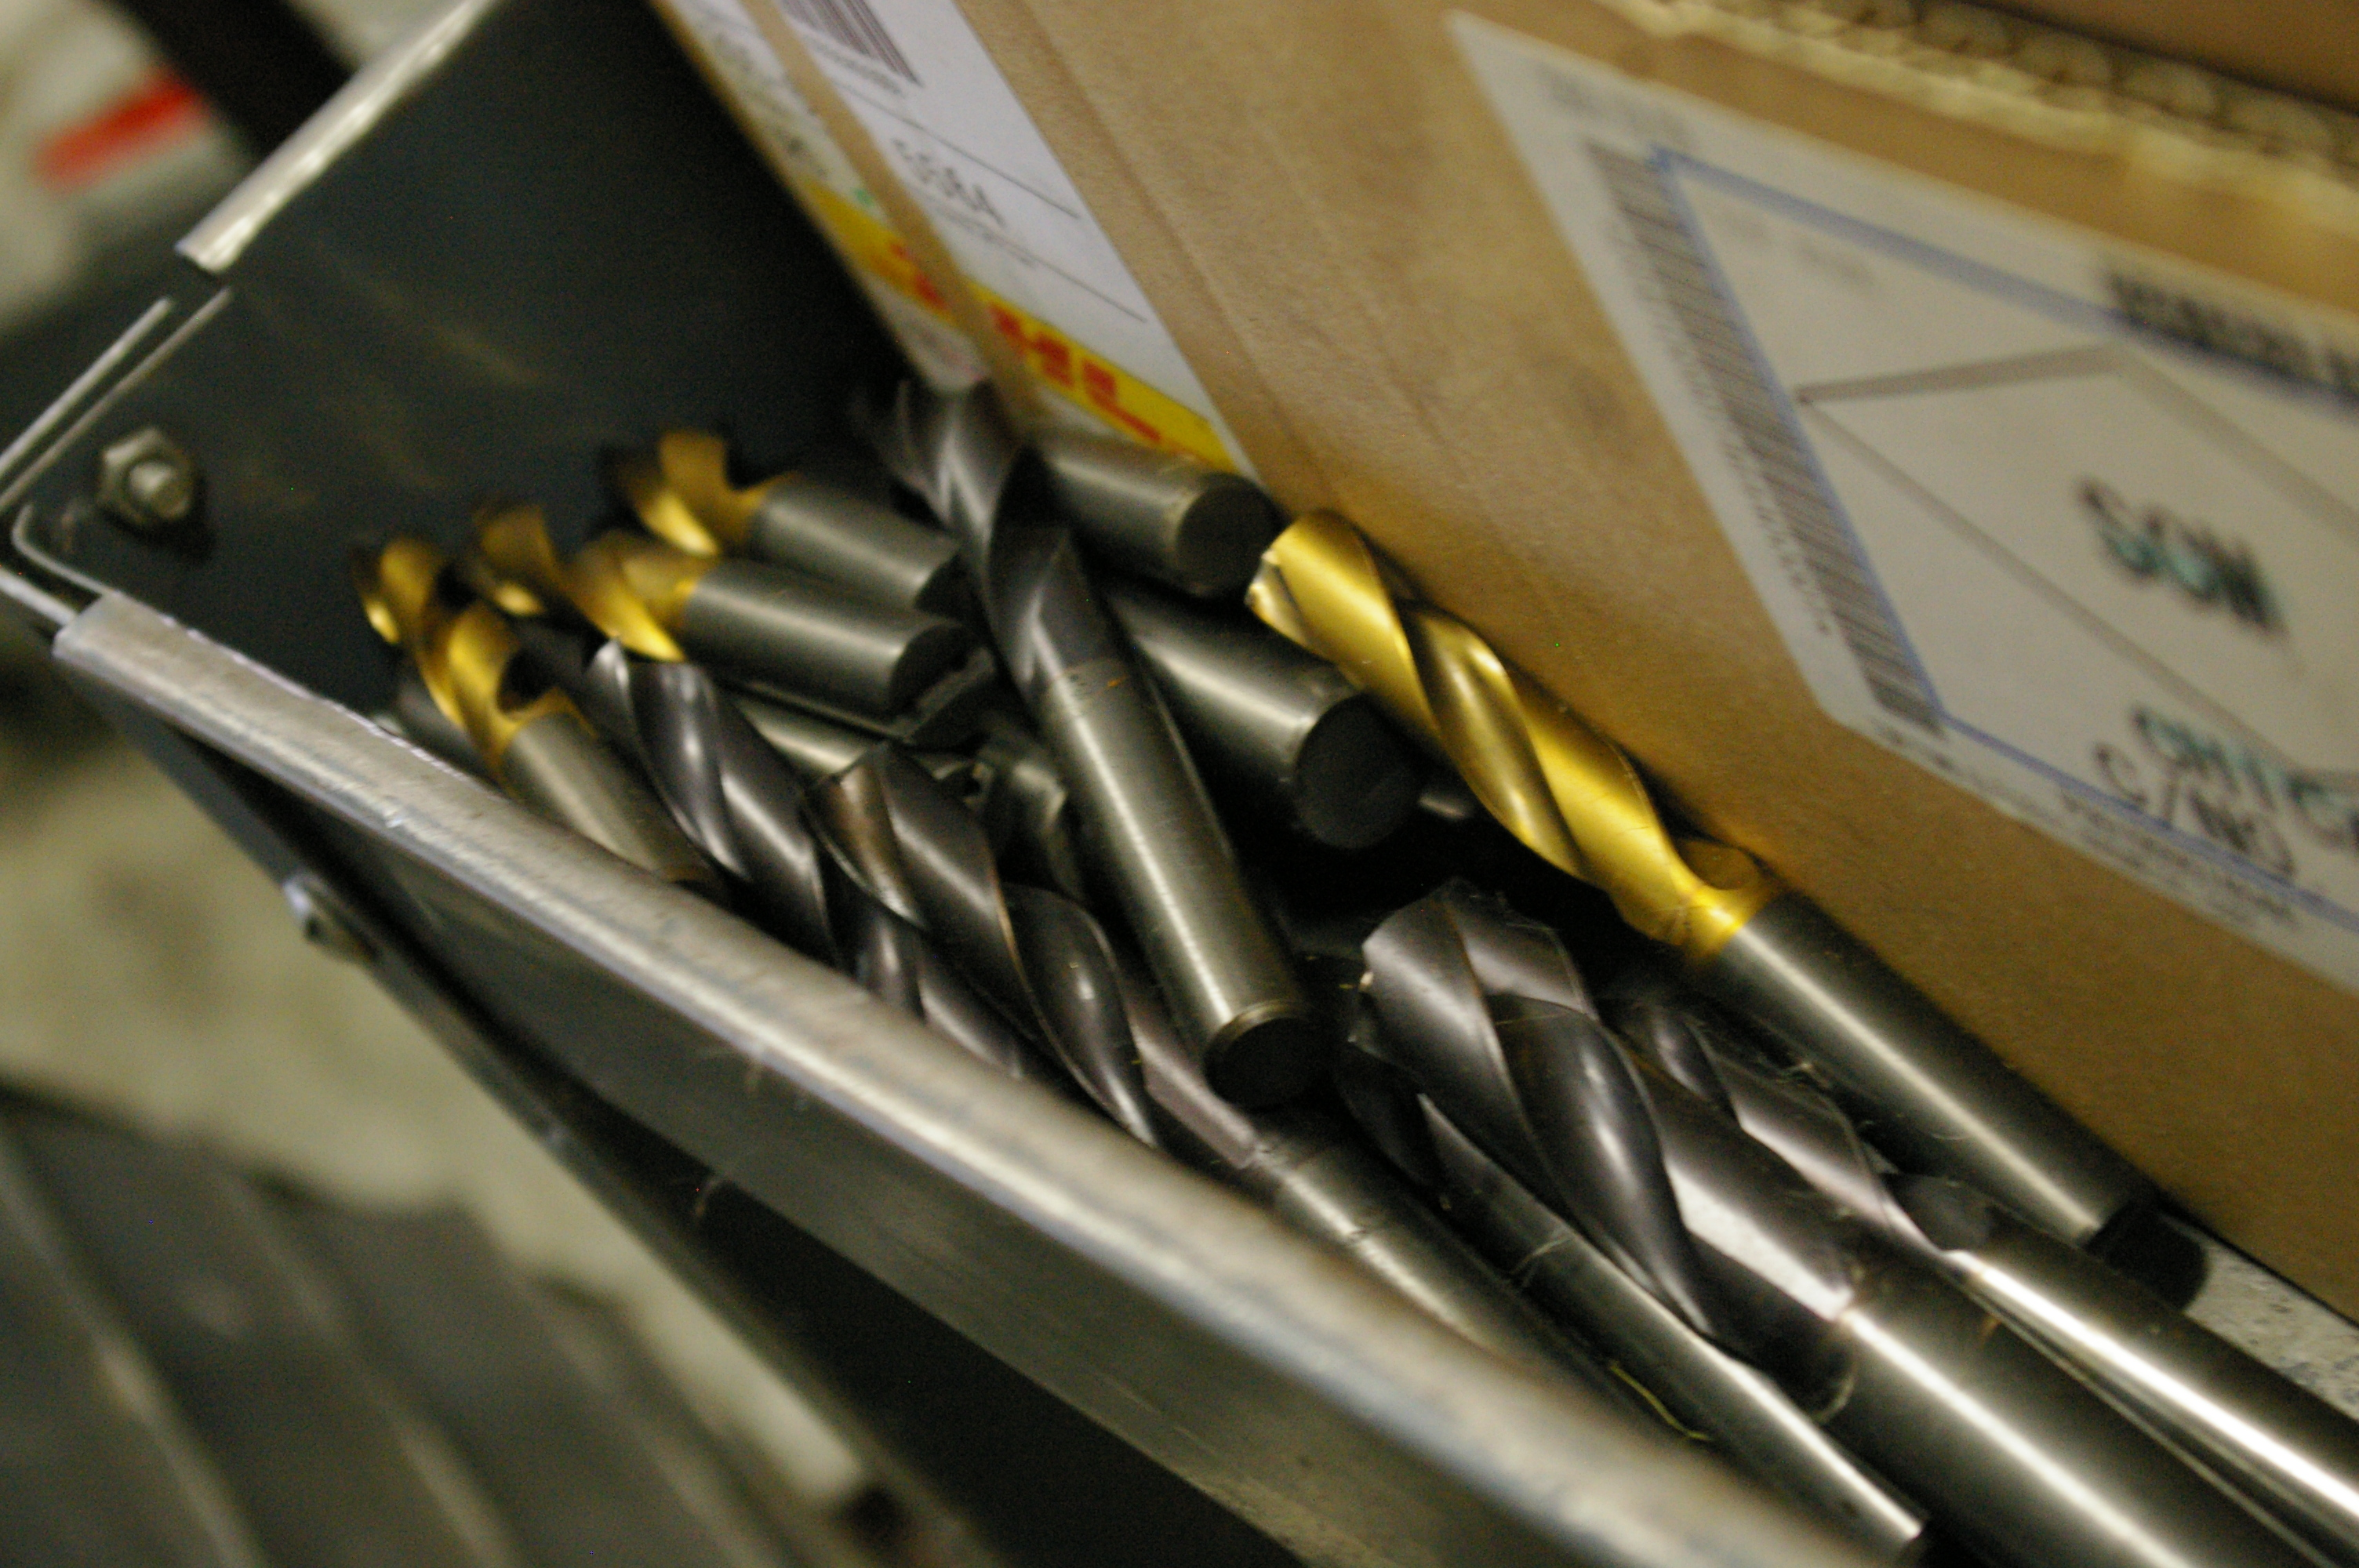 Tool Coatings from TiN to AlCrN and in between